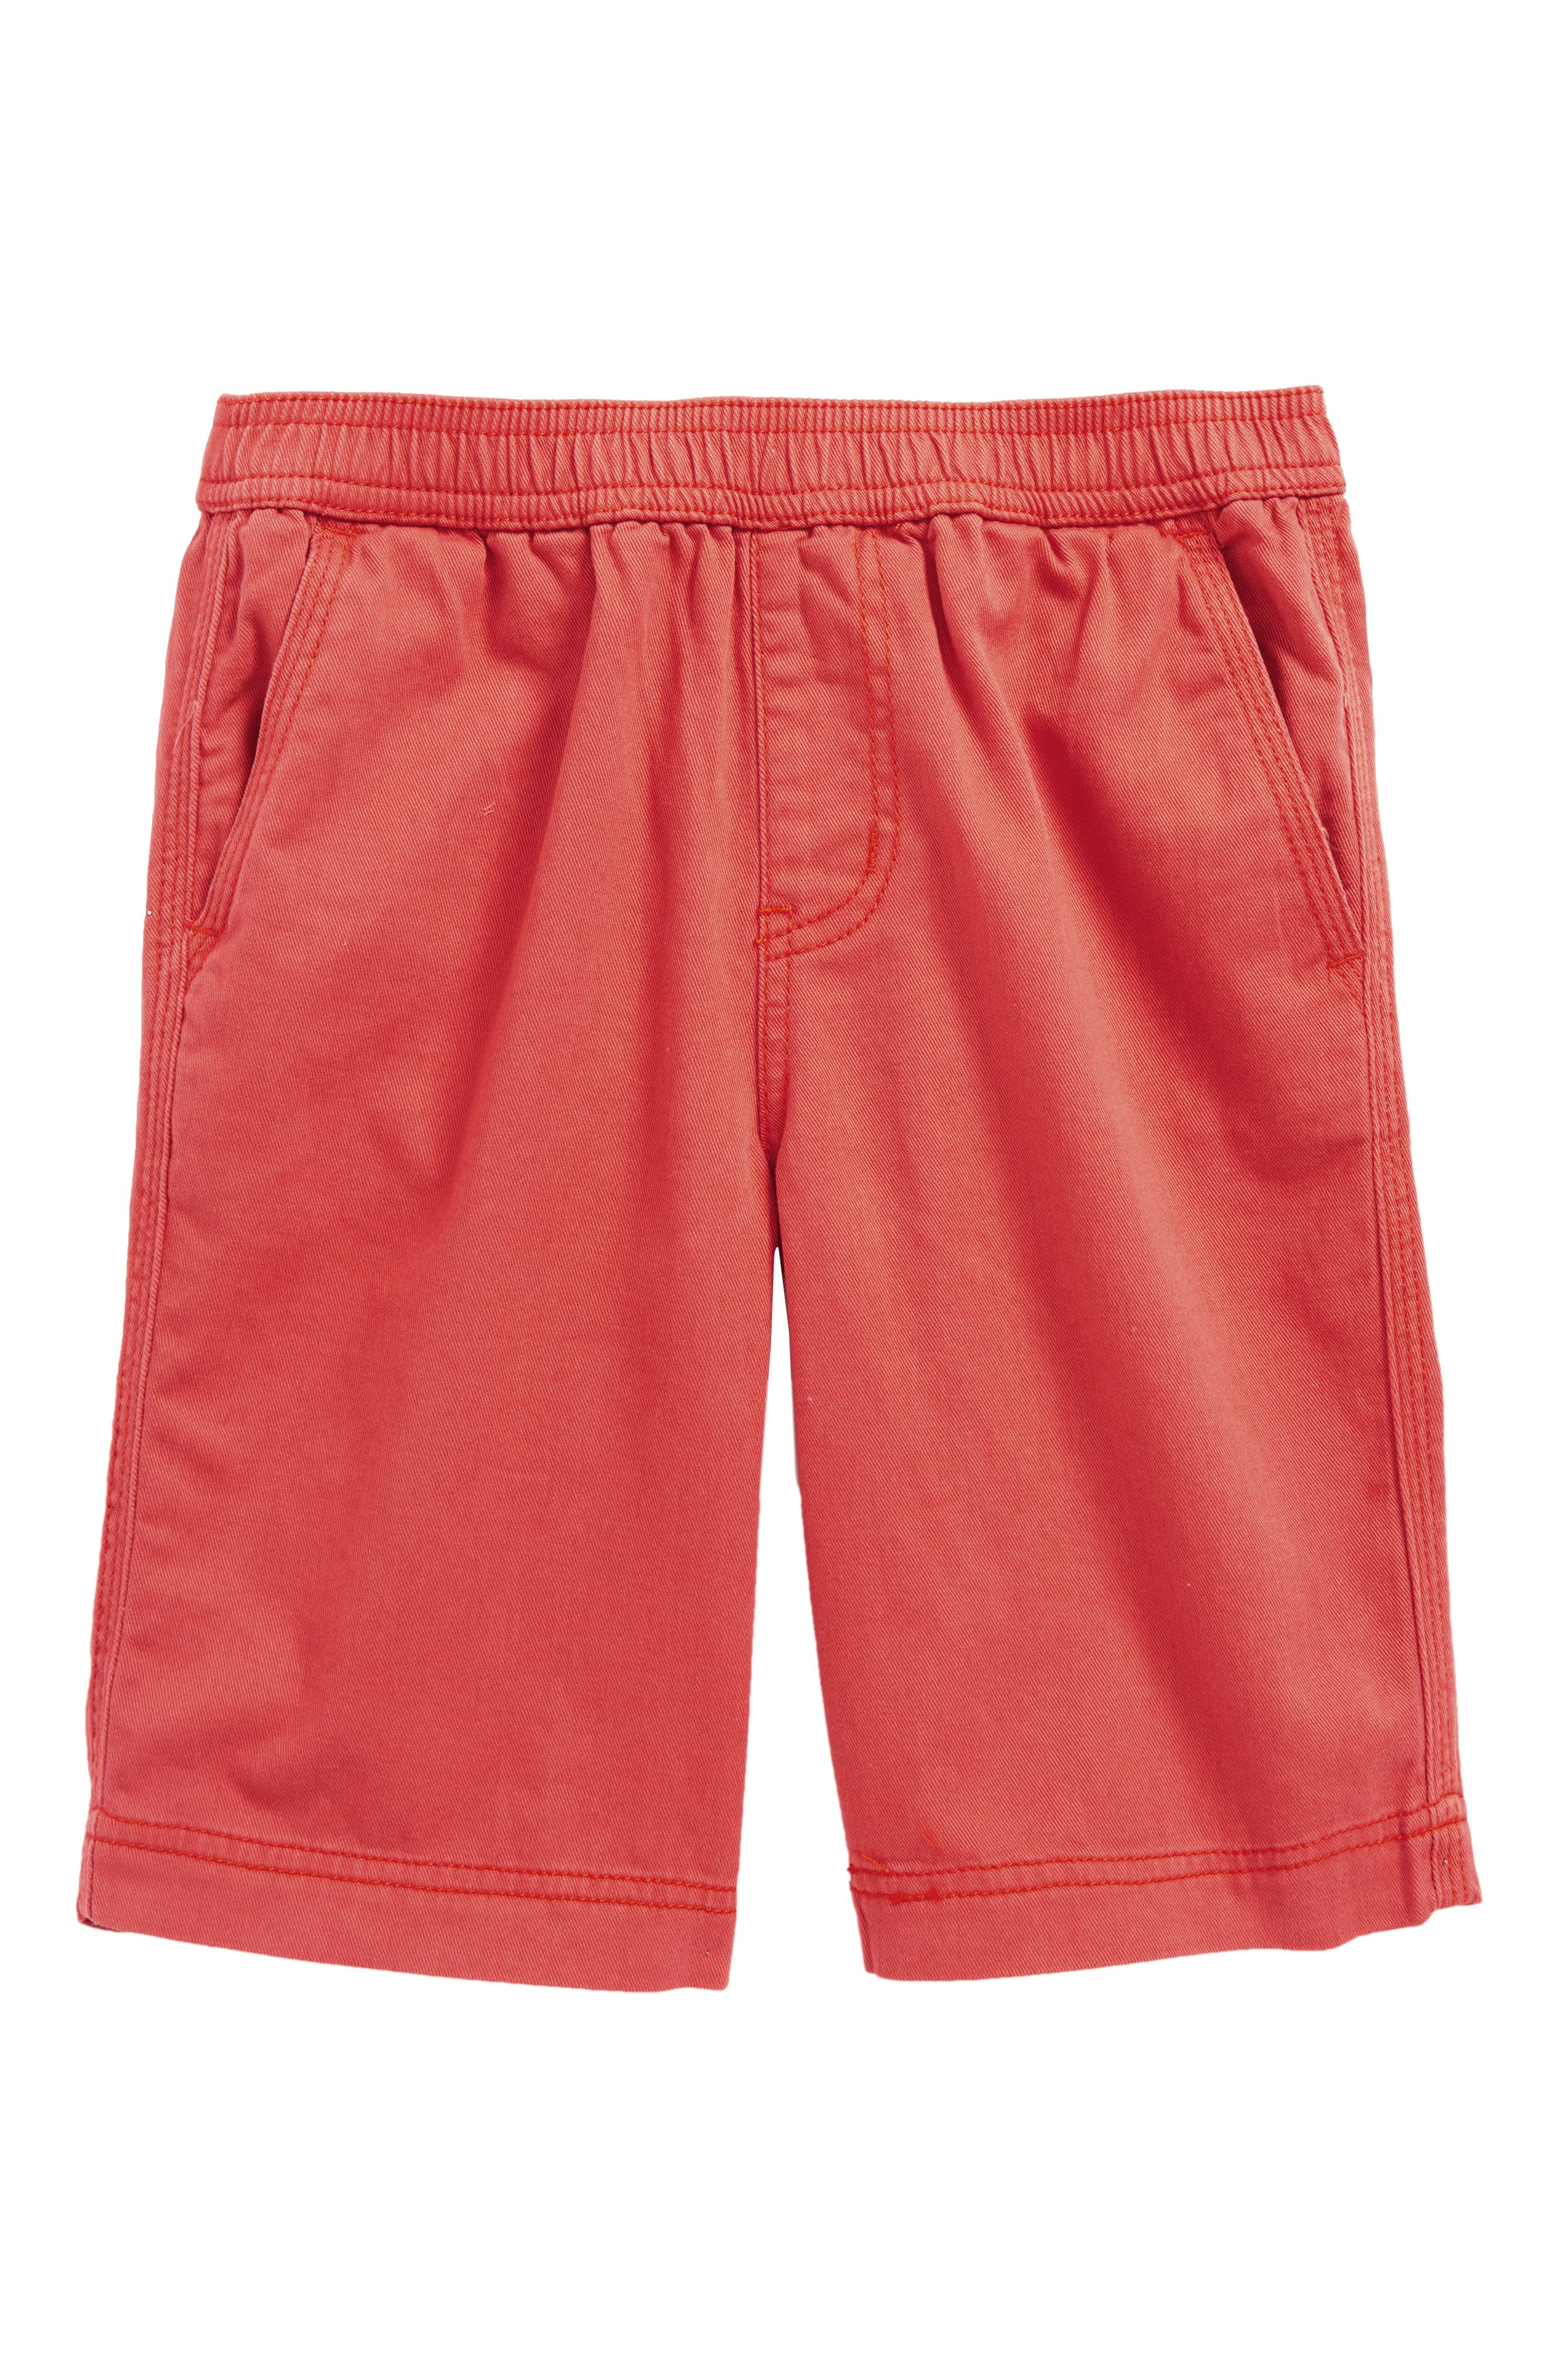 Easy Does It Twill Shorts,                         Main,                         color, 618